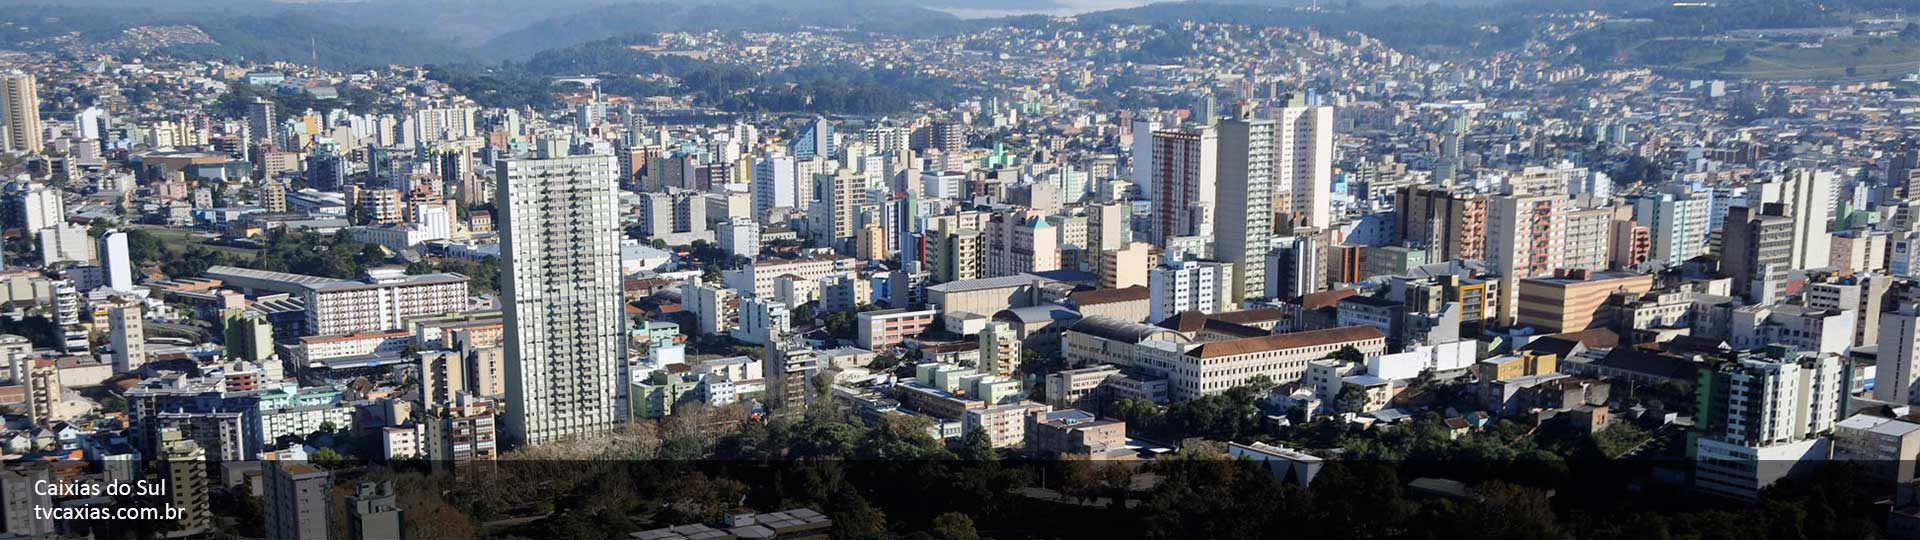 vista-panoramica-caxias-do-sul-rs